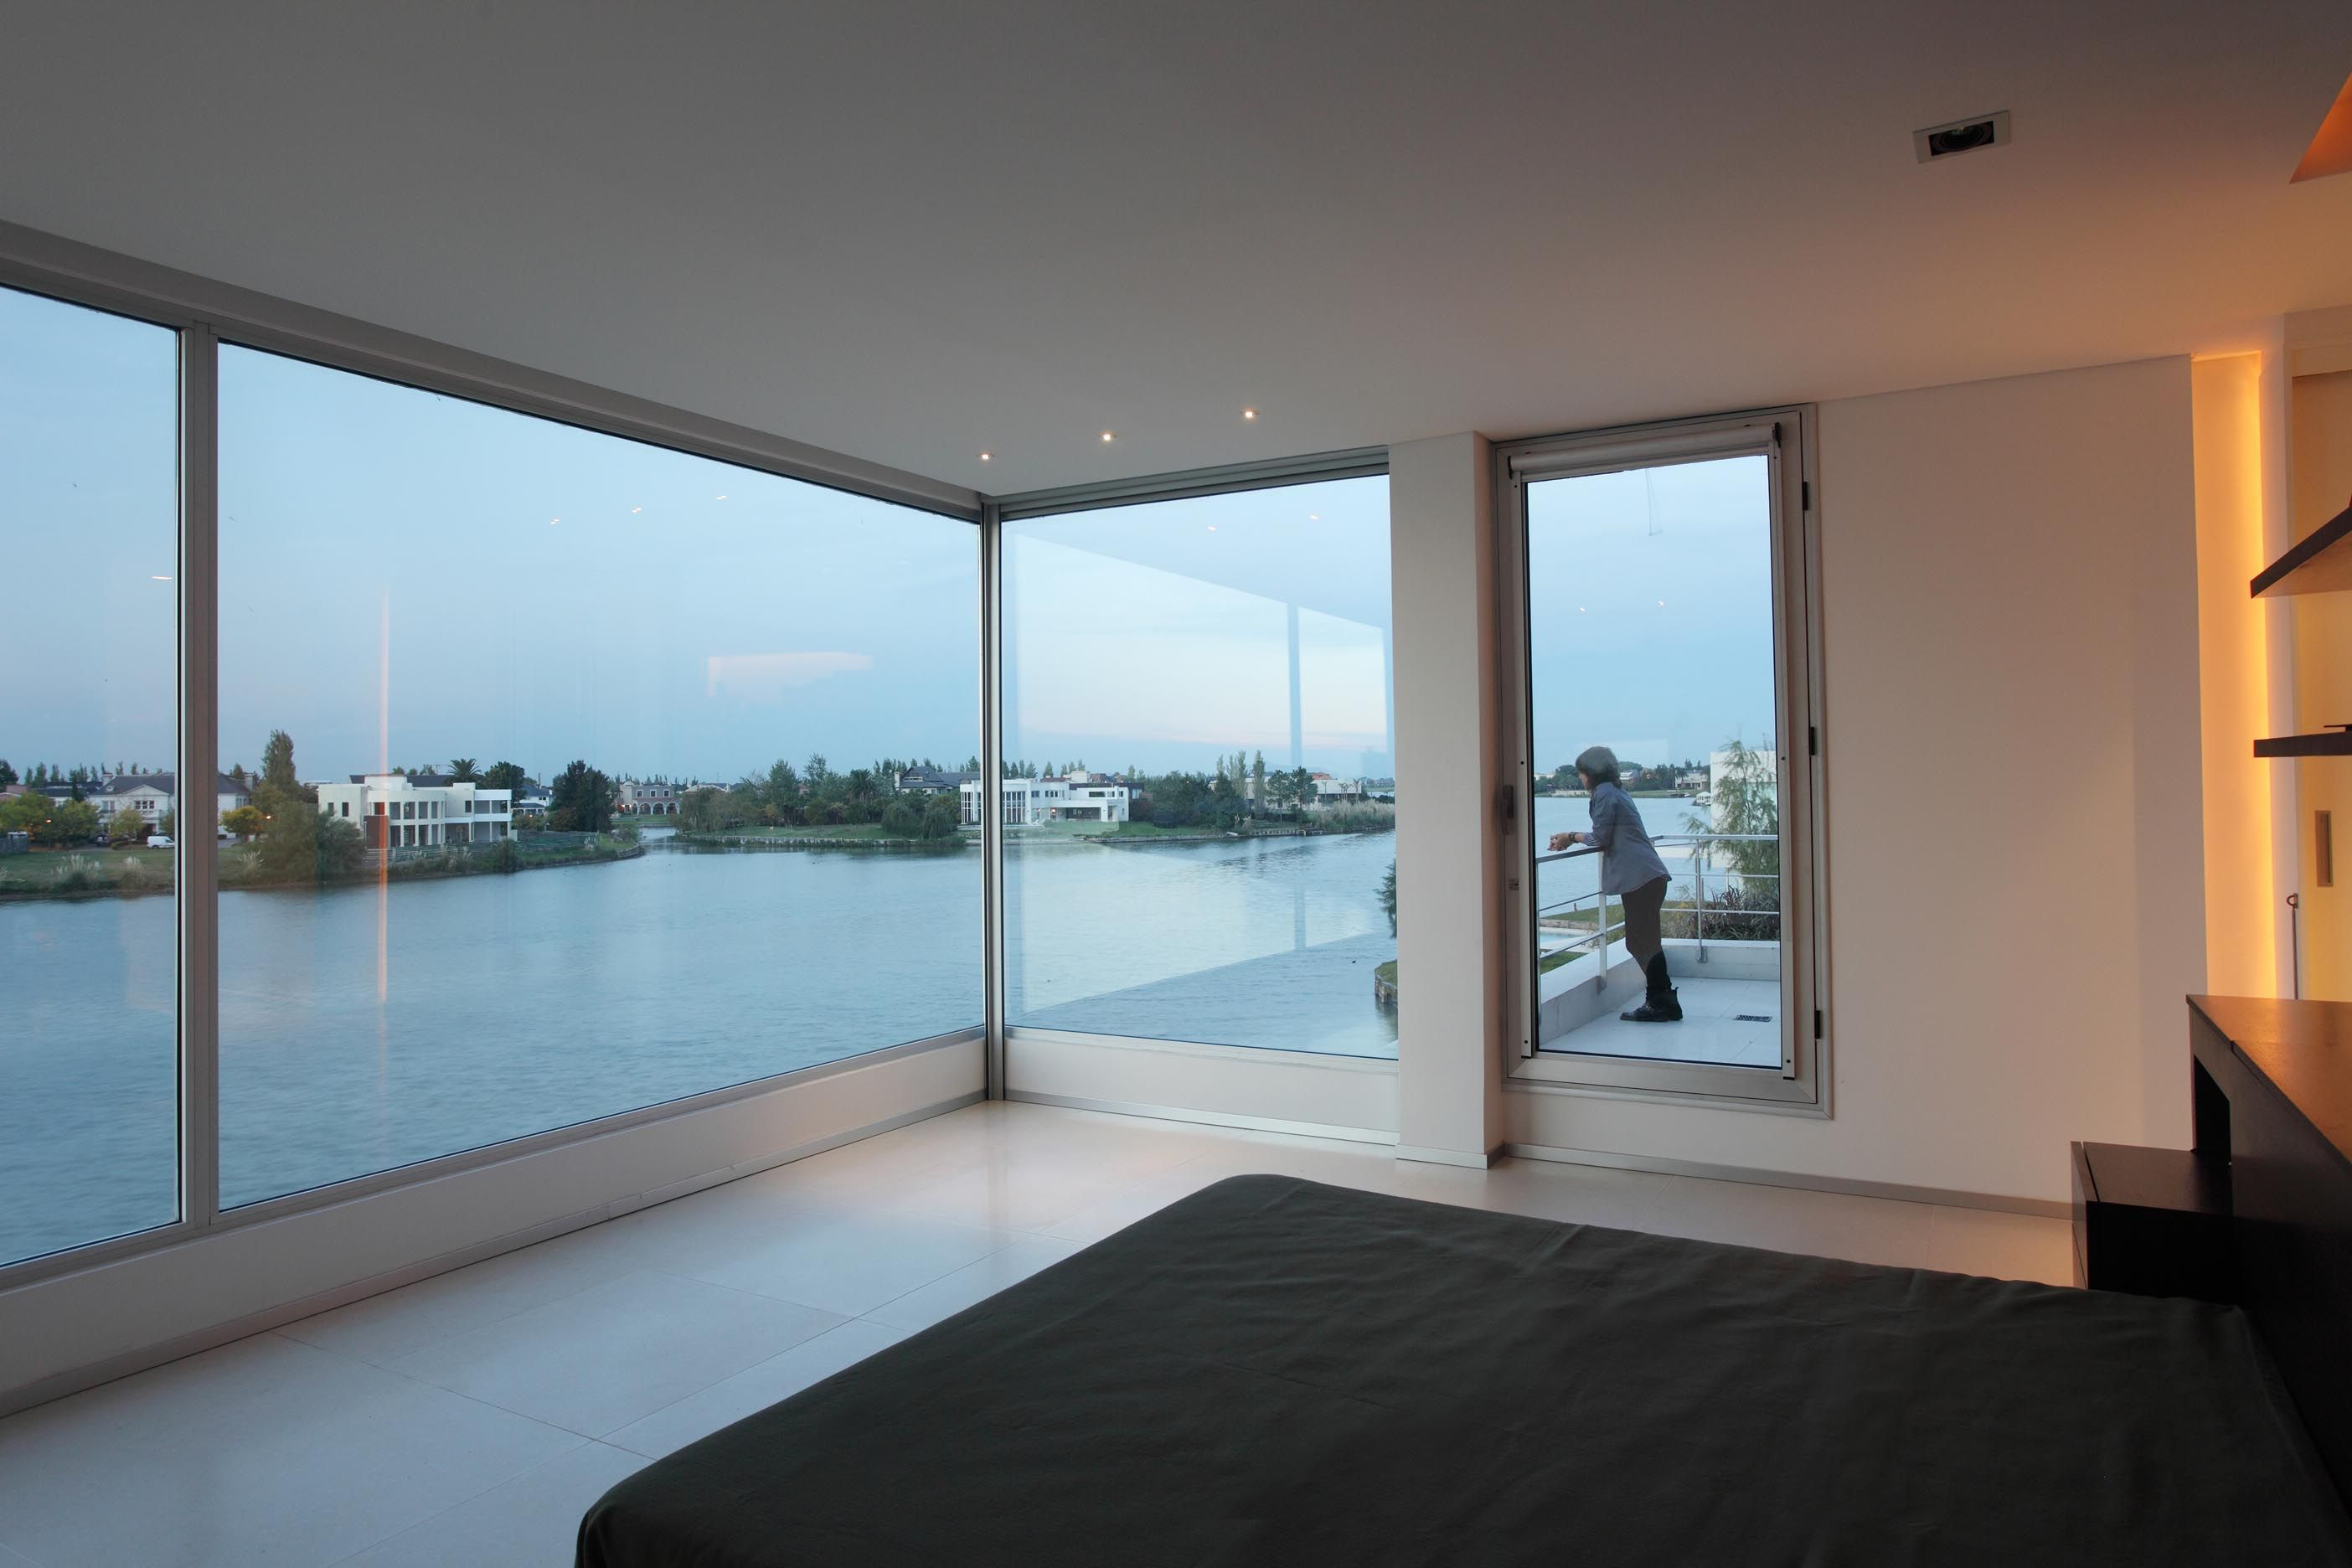 Mesmerizing open glass windows from beach house interior for Minimalist house interior